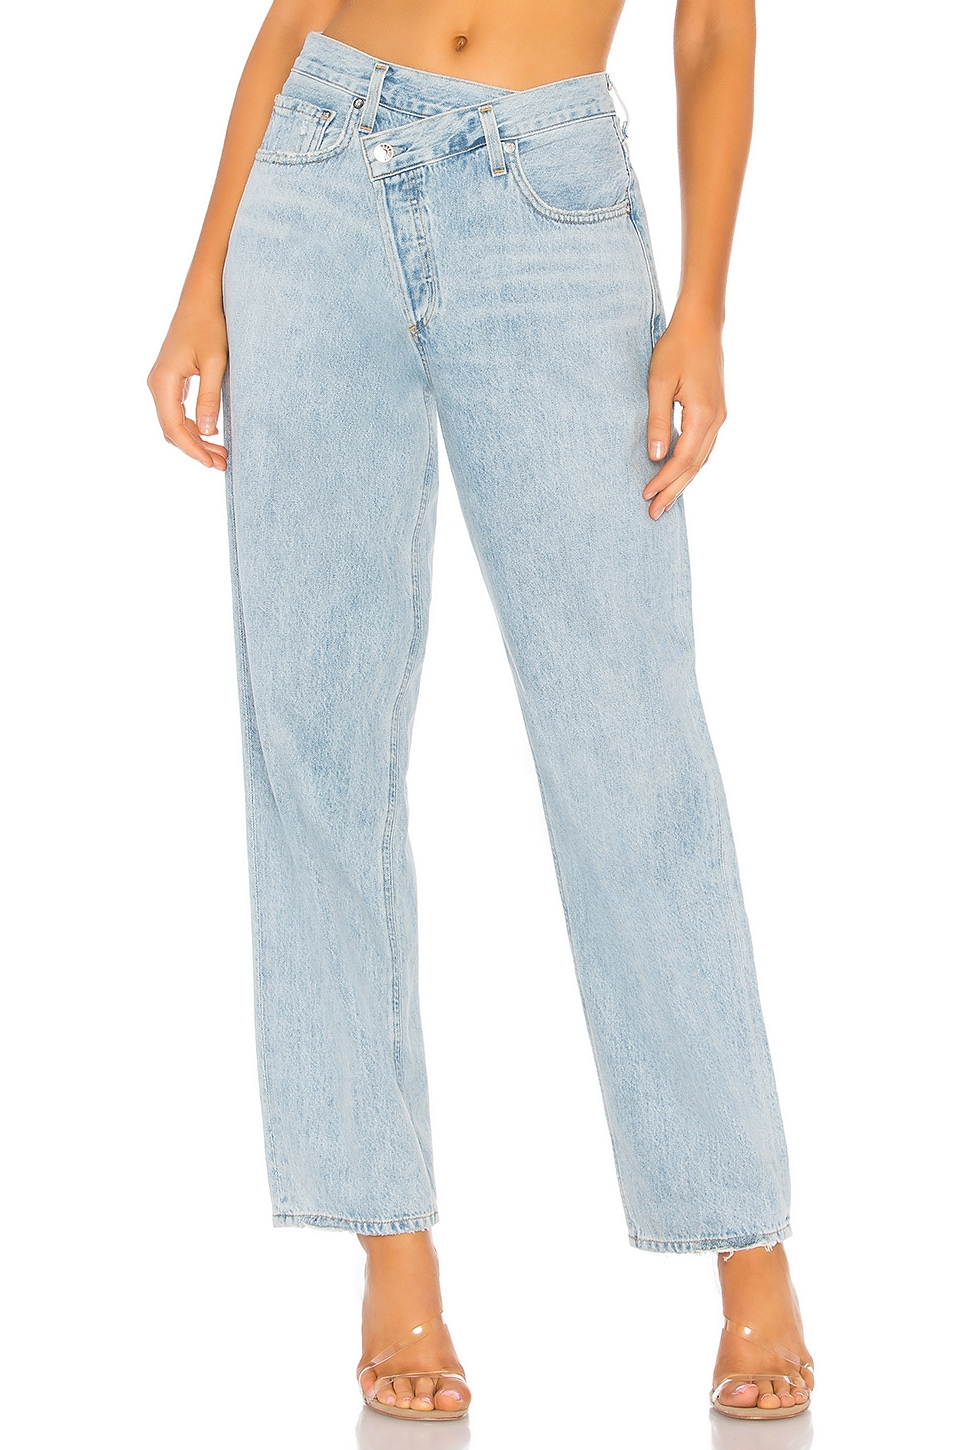 Criss Cross Upsized Jean, view 2, click to view large image.